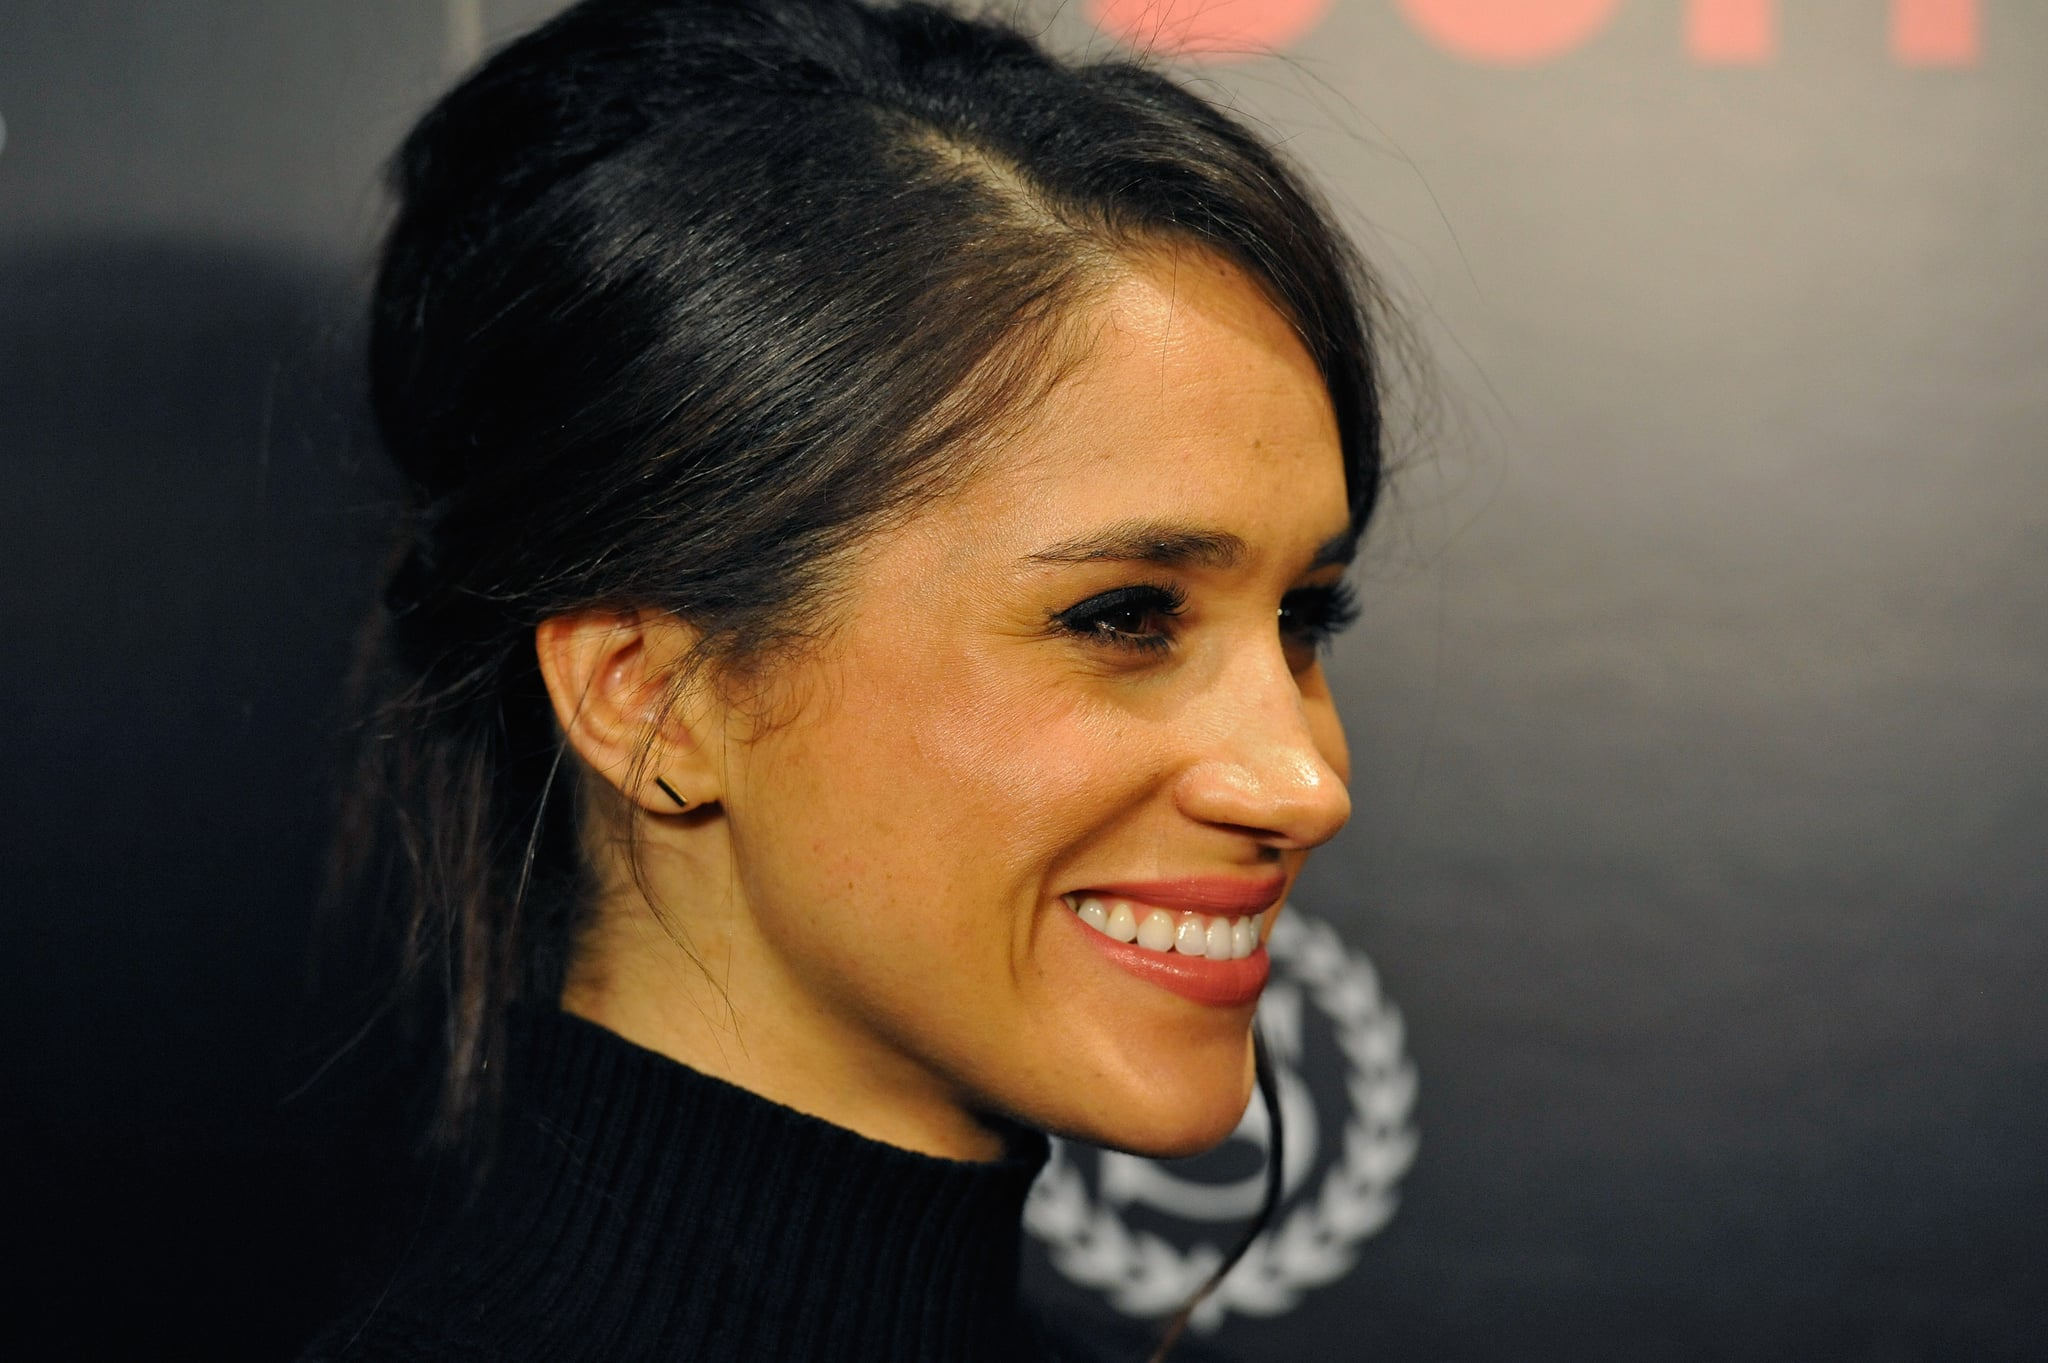 The Weirdly Empowering Reason People Are Getting Nose Jobs to Look Like Meghan Markle images 0